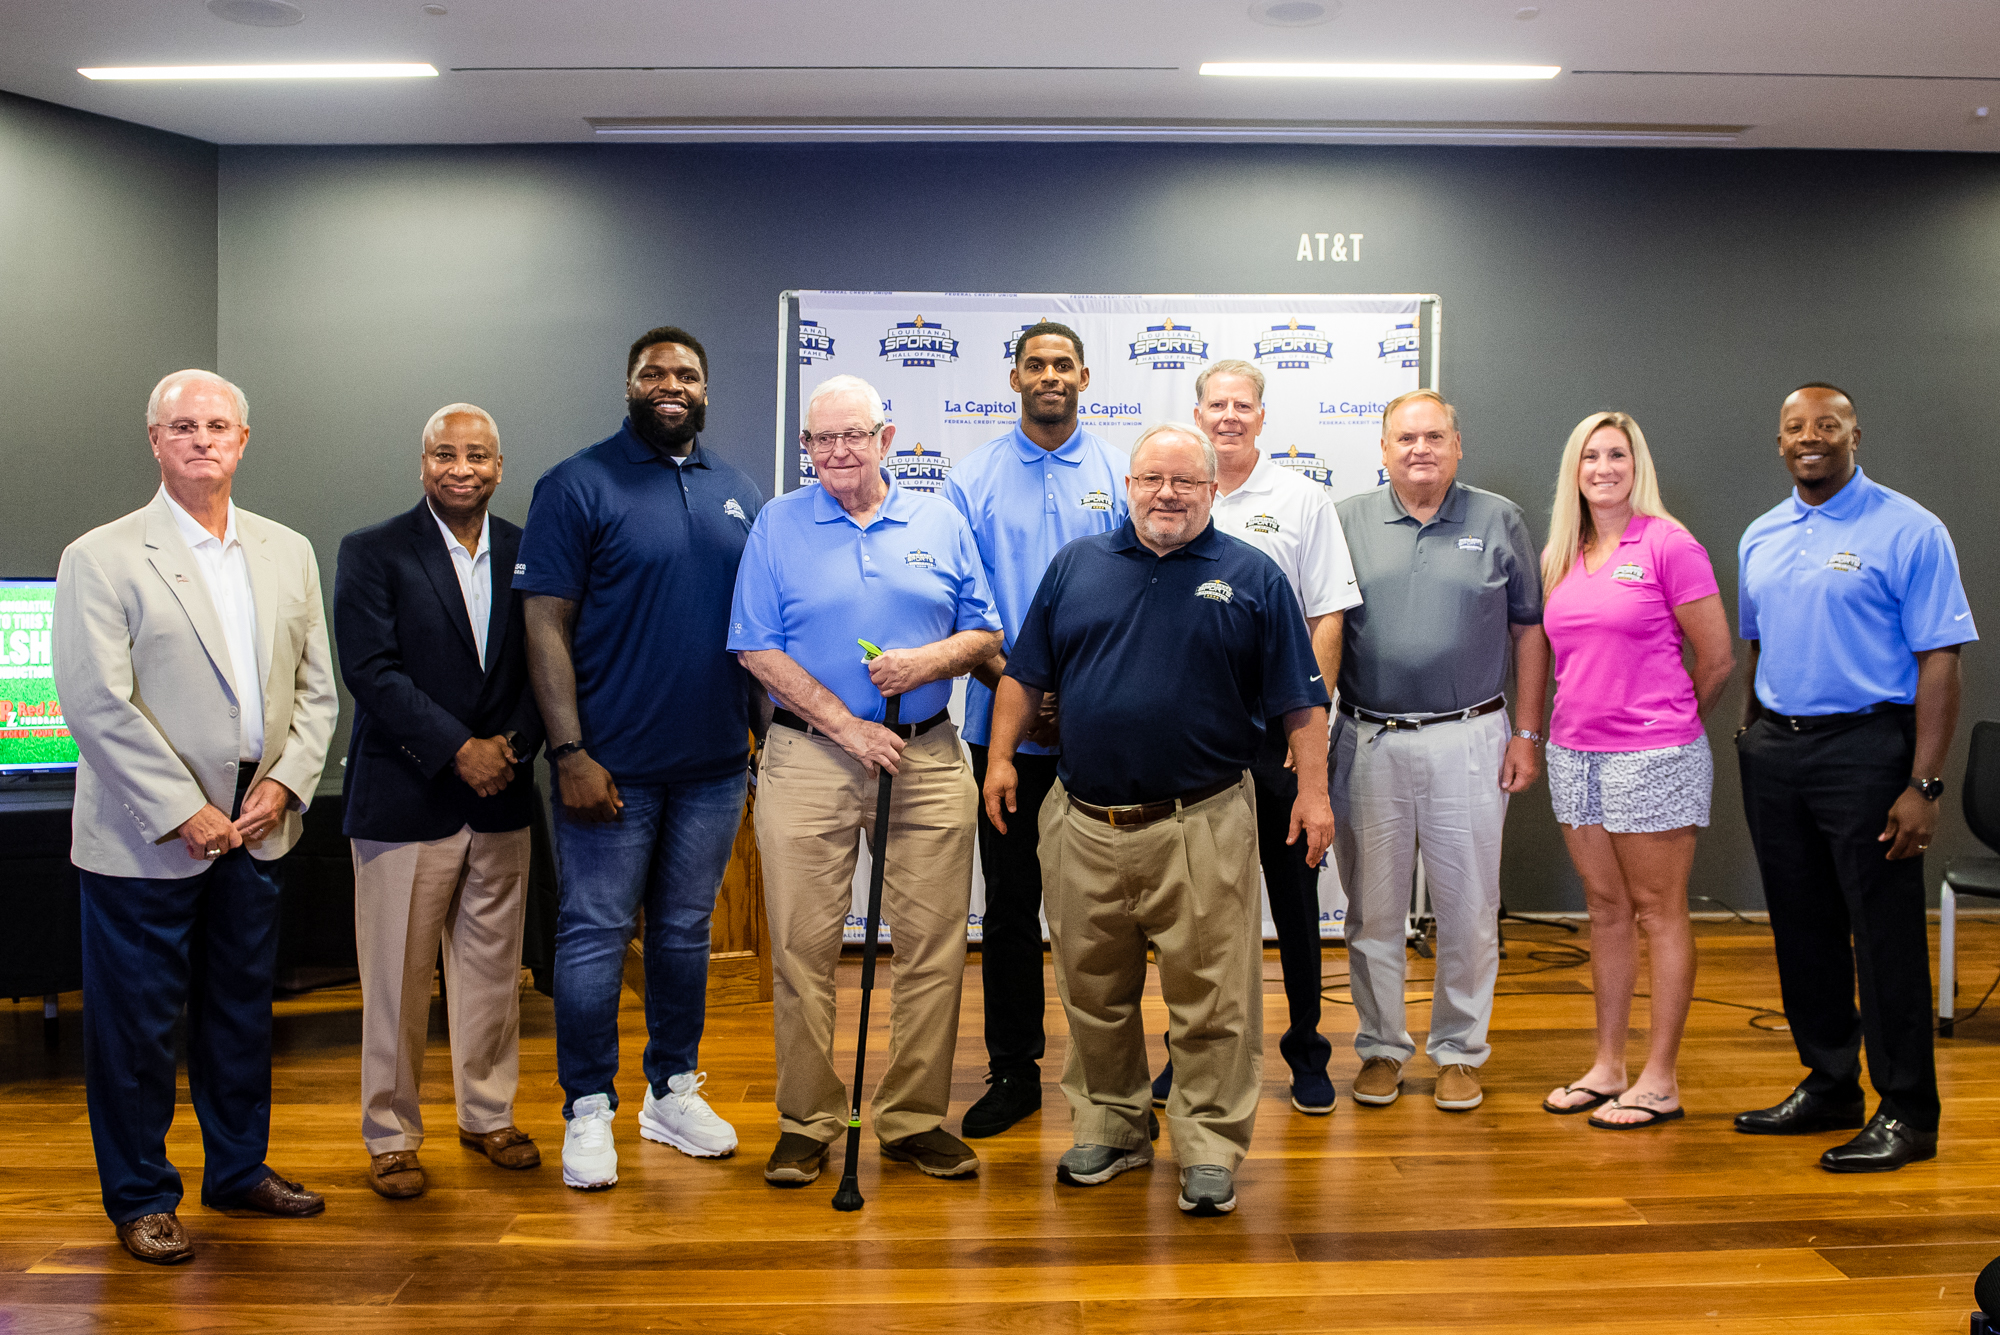 Baton Rouge area headlines the 2021 induction class at Thursday presser